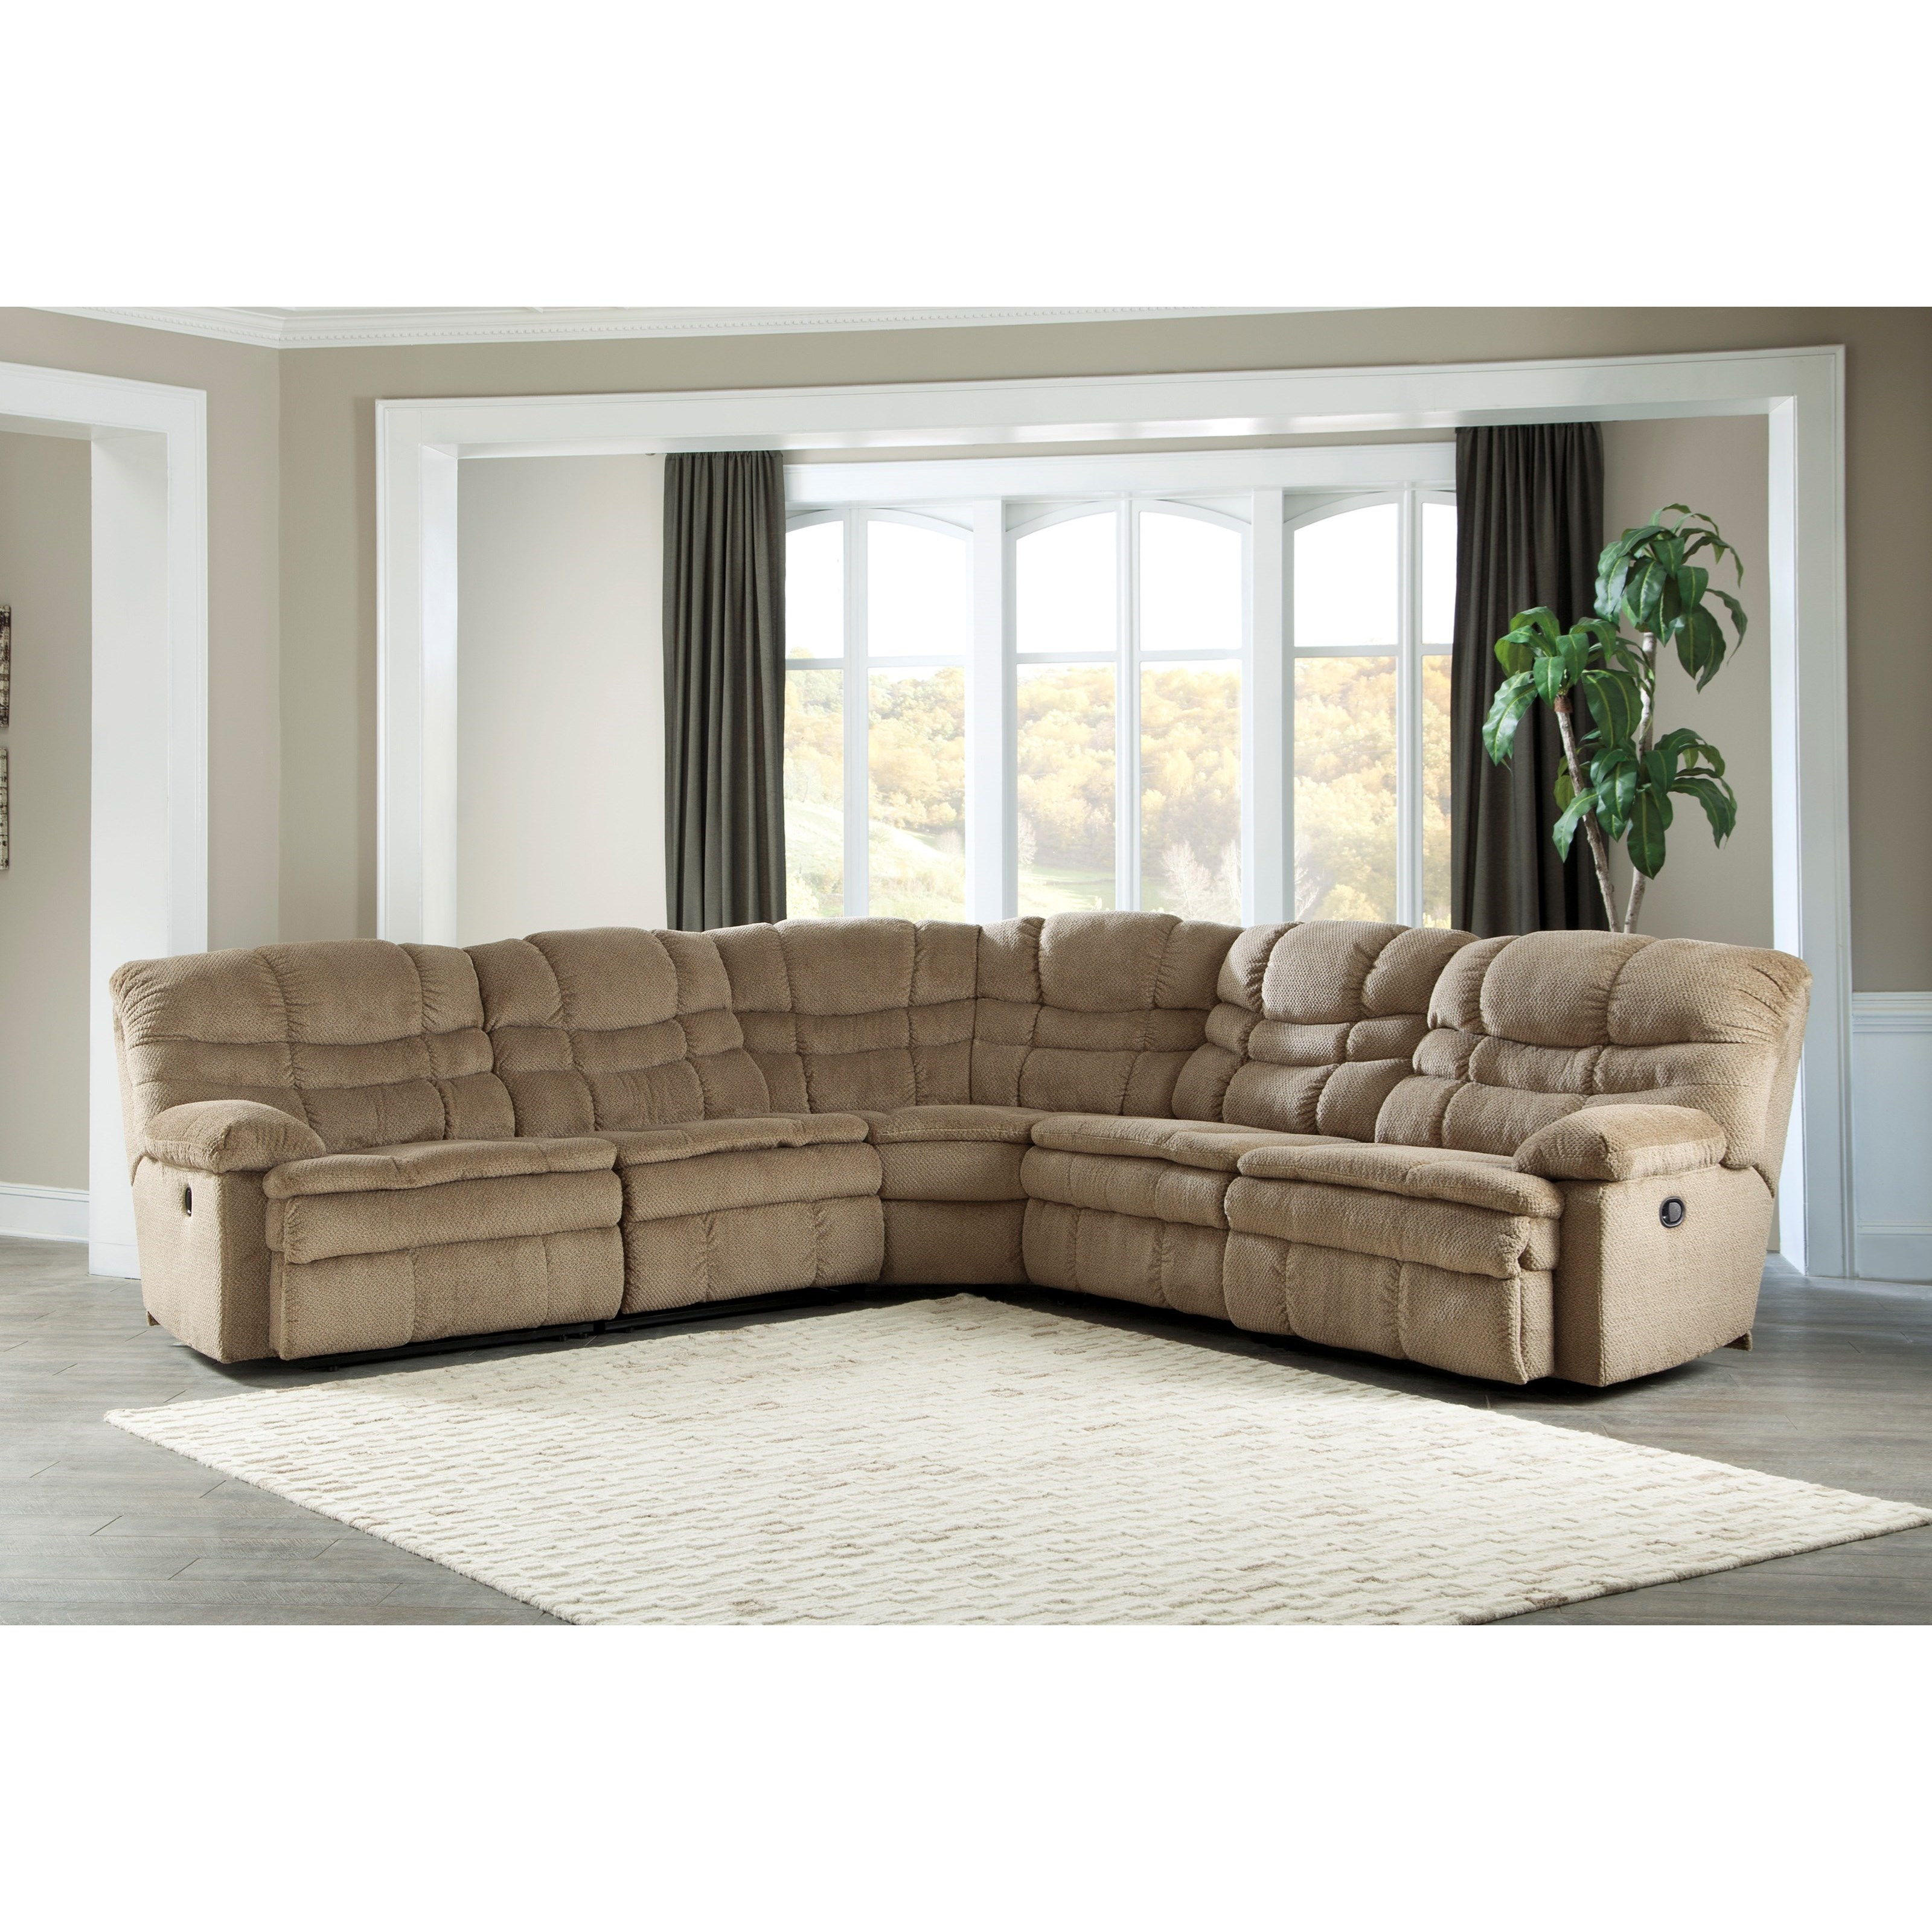 Signature Design by Ashley Zavion 5 Piece Reclining Sectional - Item Number: 6630340+19+77+46+41